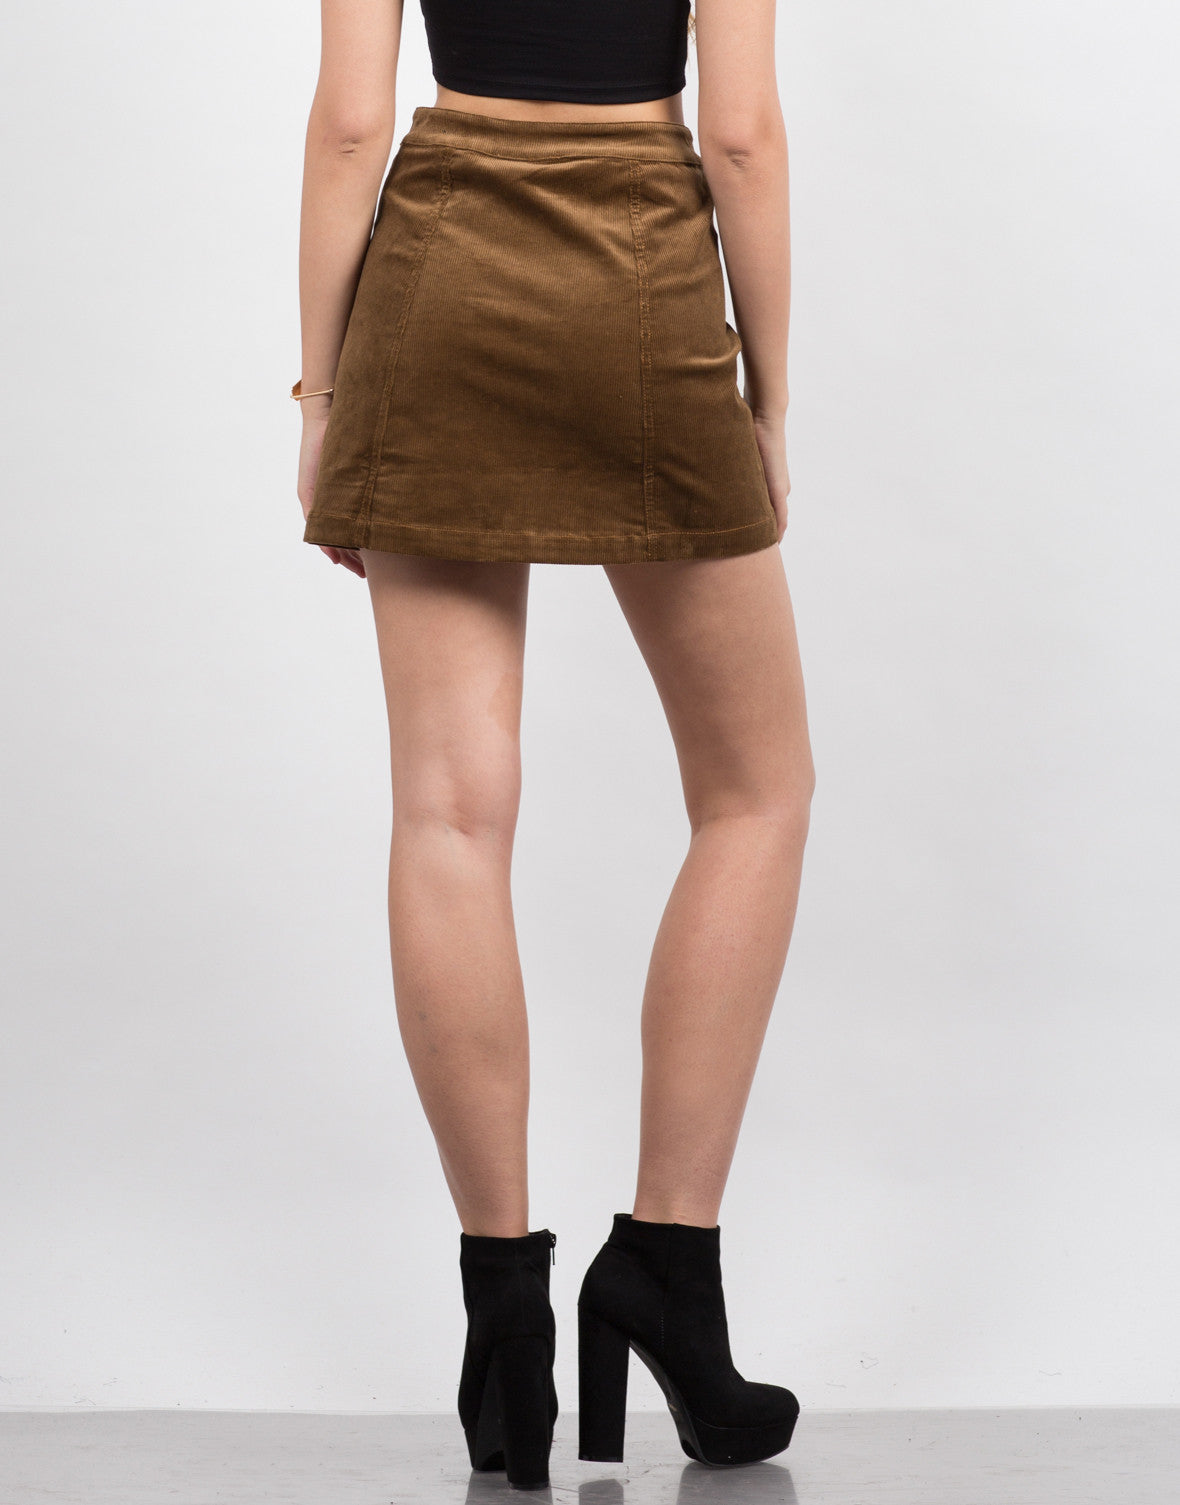 Back View of Corduroy Mini Skirt